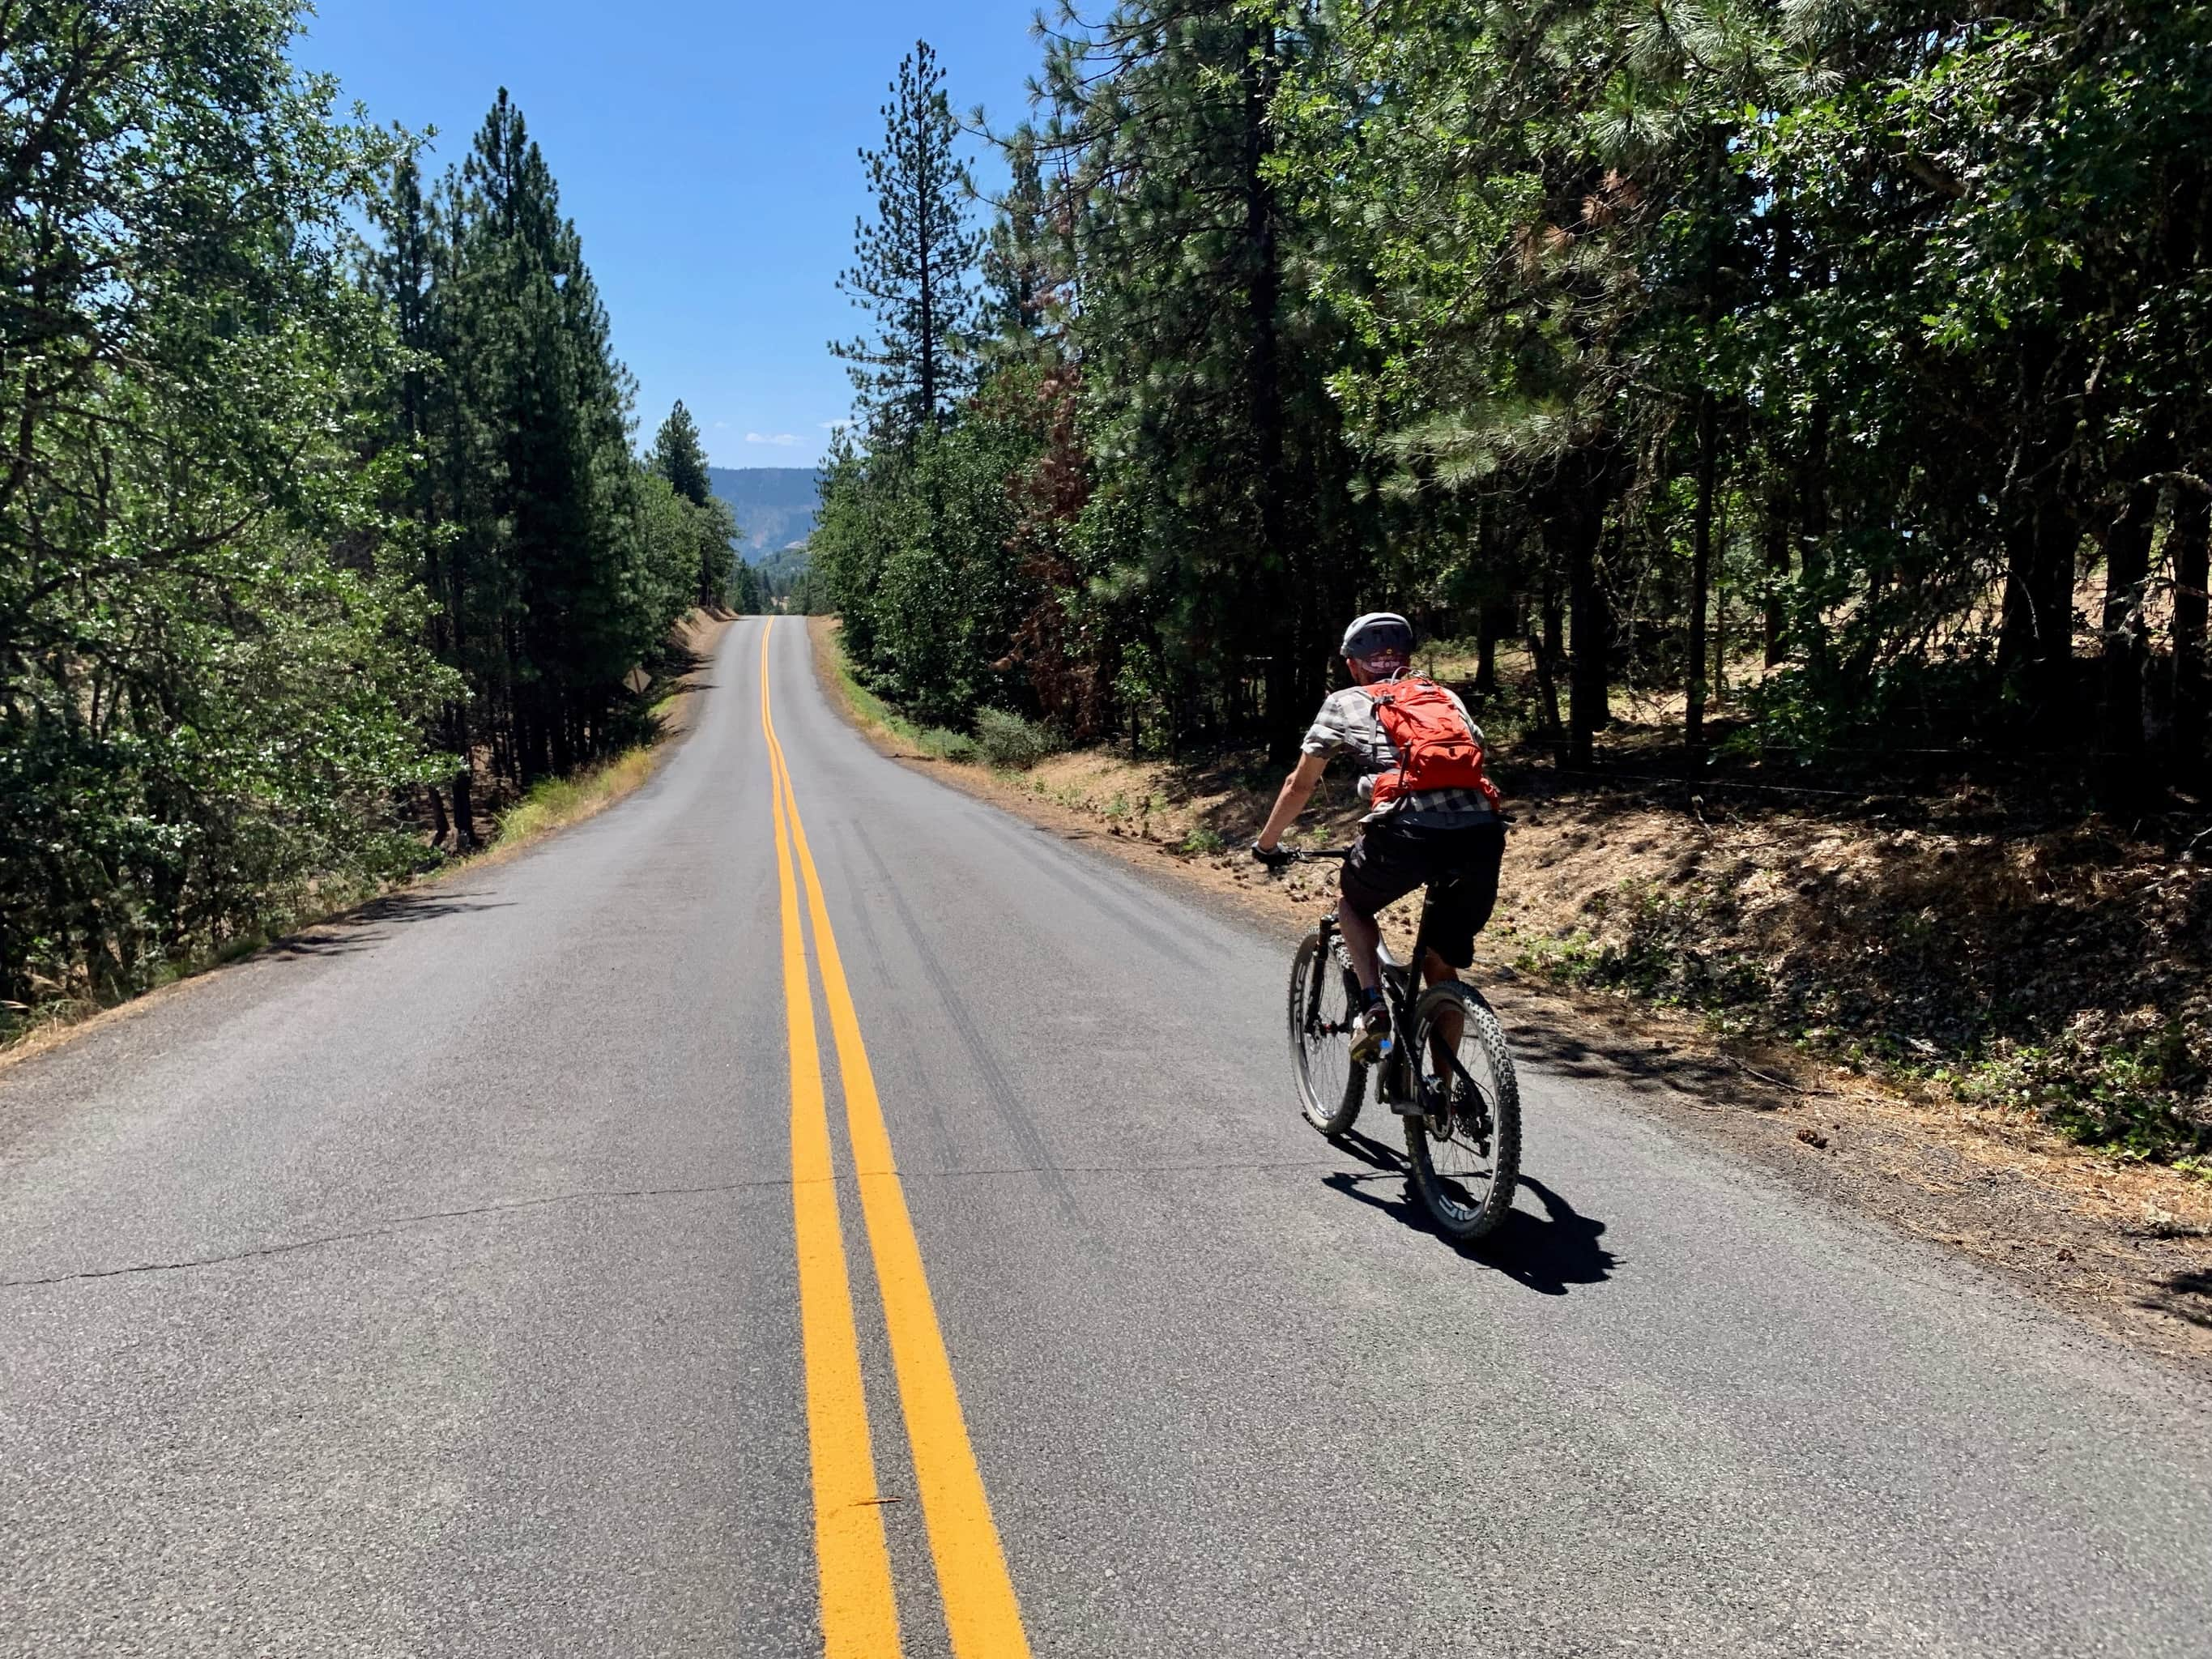 Cyclist descending the paved portion of the Lyle Snowden road north of the Columbia river.